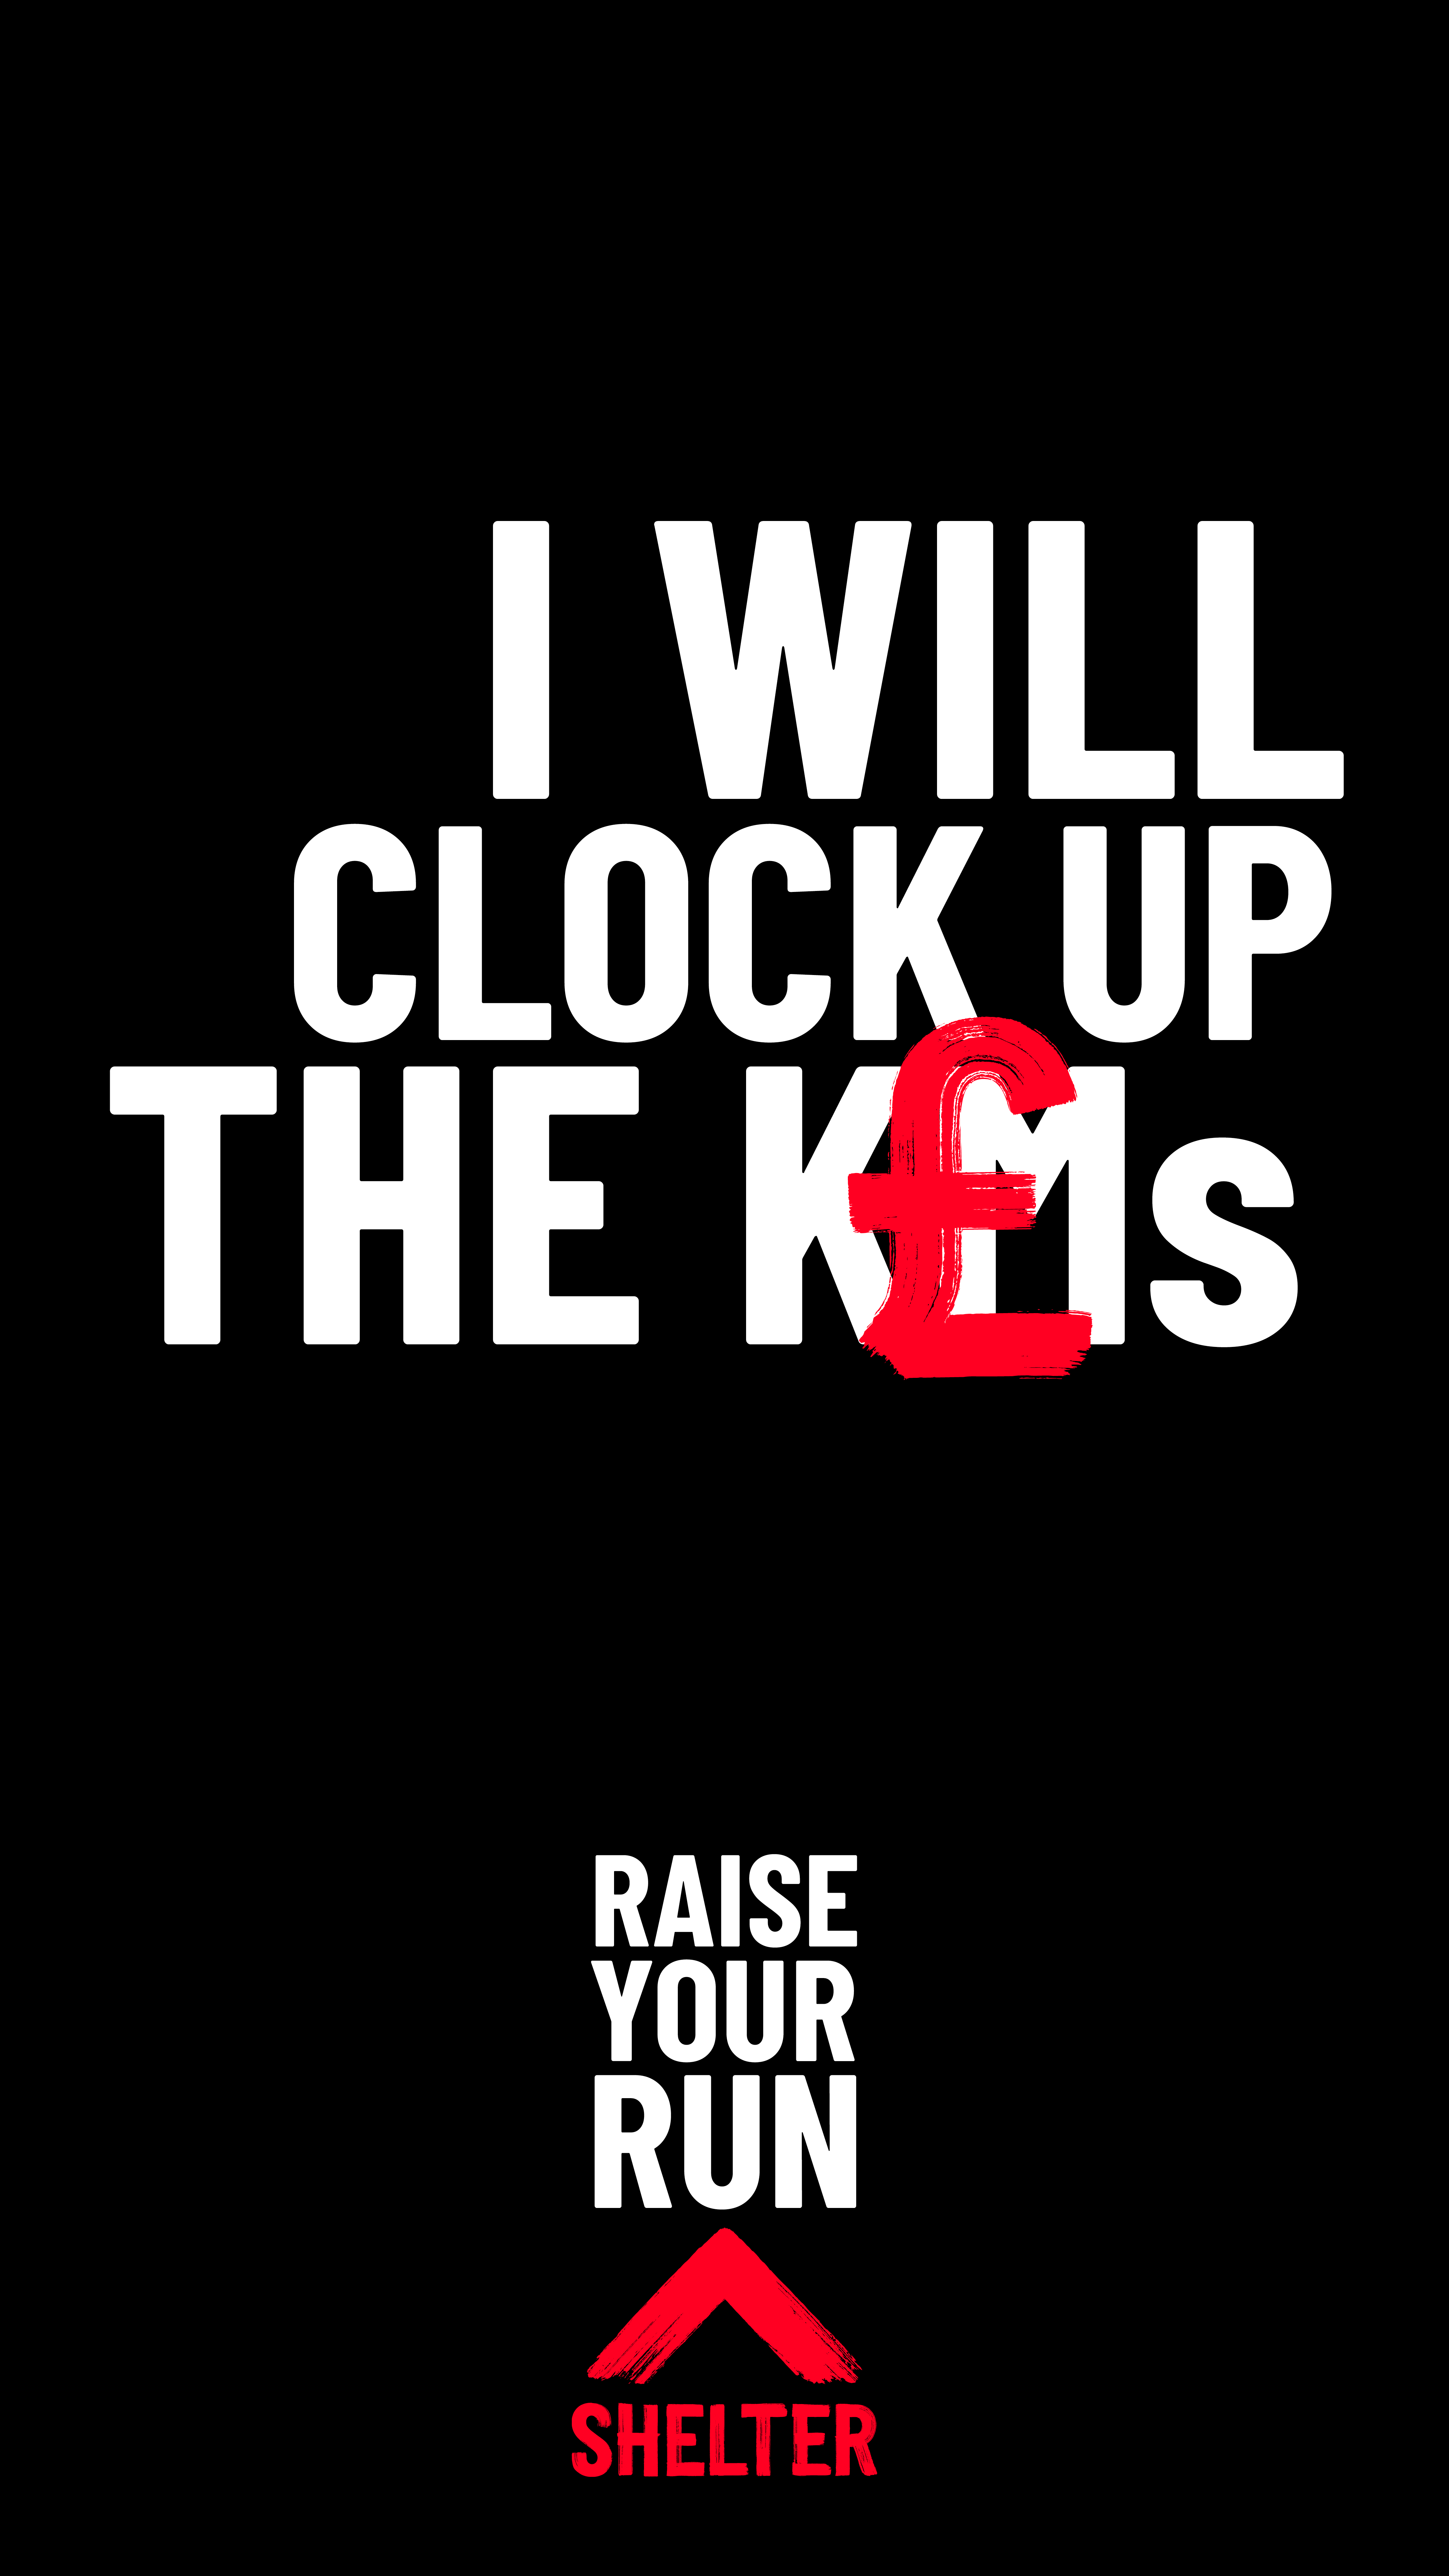 'I will clock up the £s' on black background